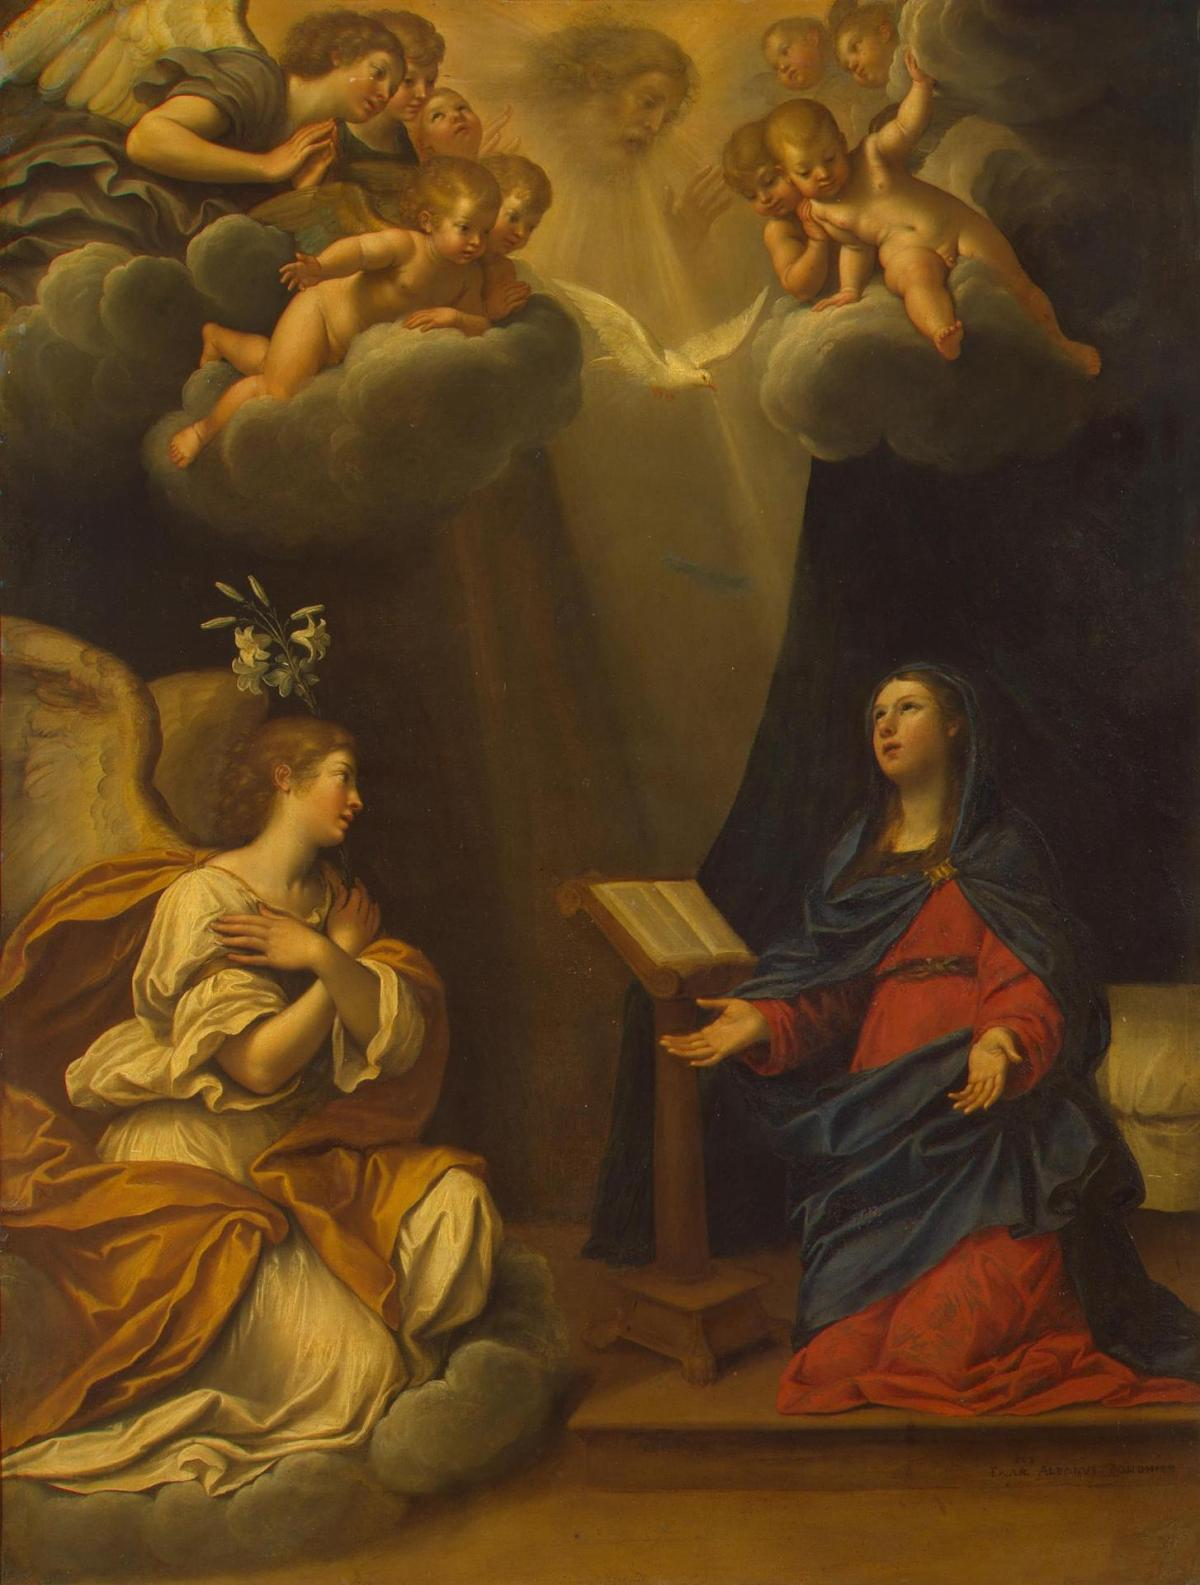 The Annunciation by Francesco Albani